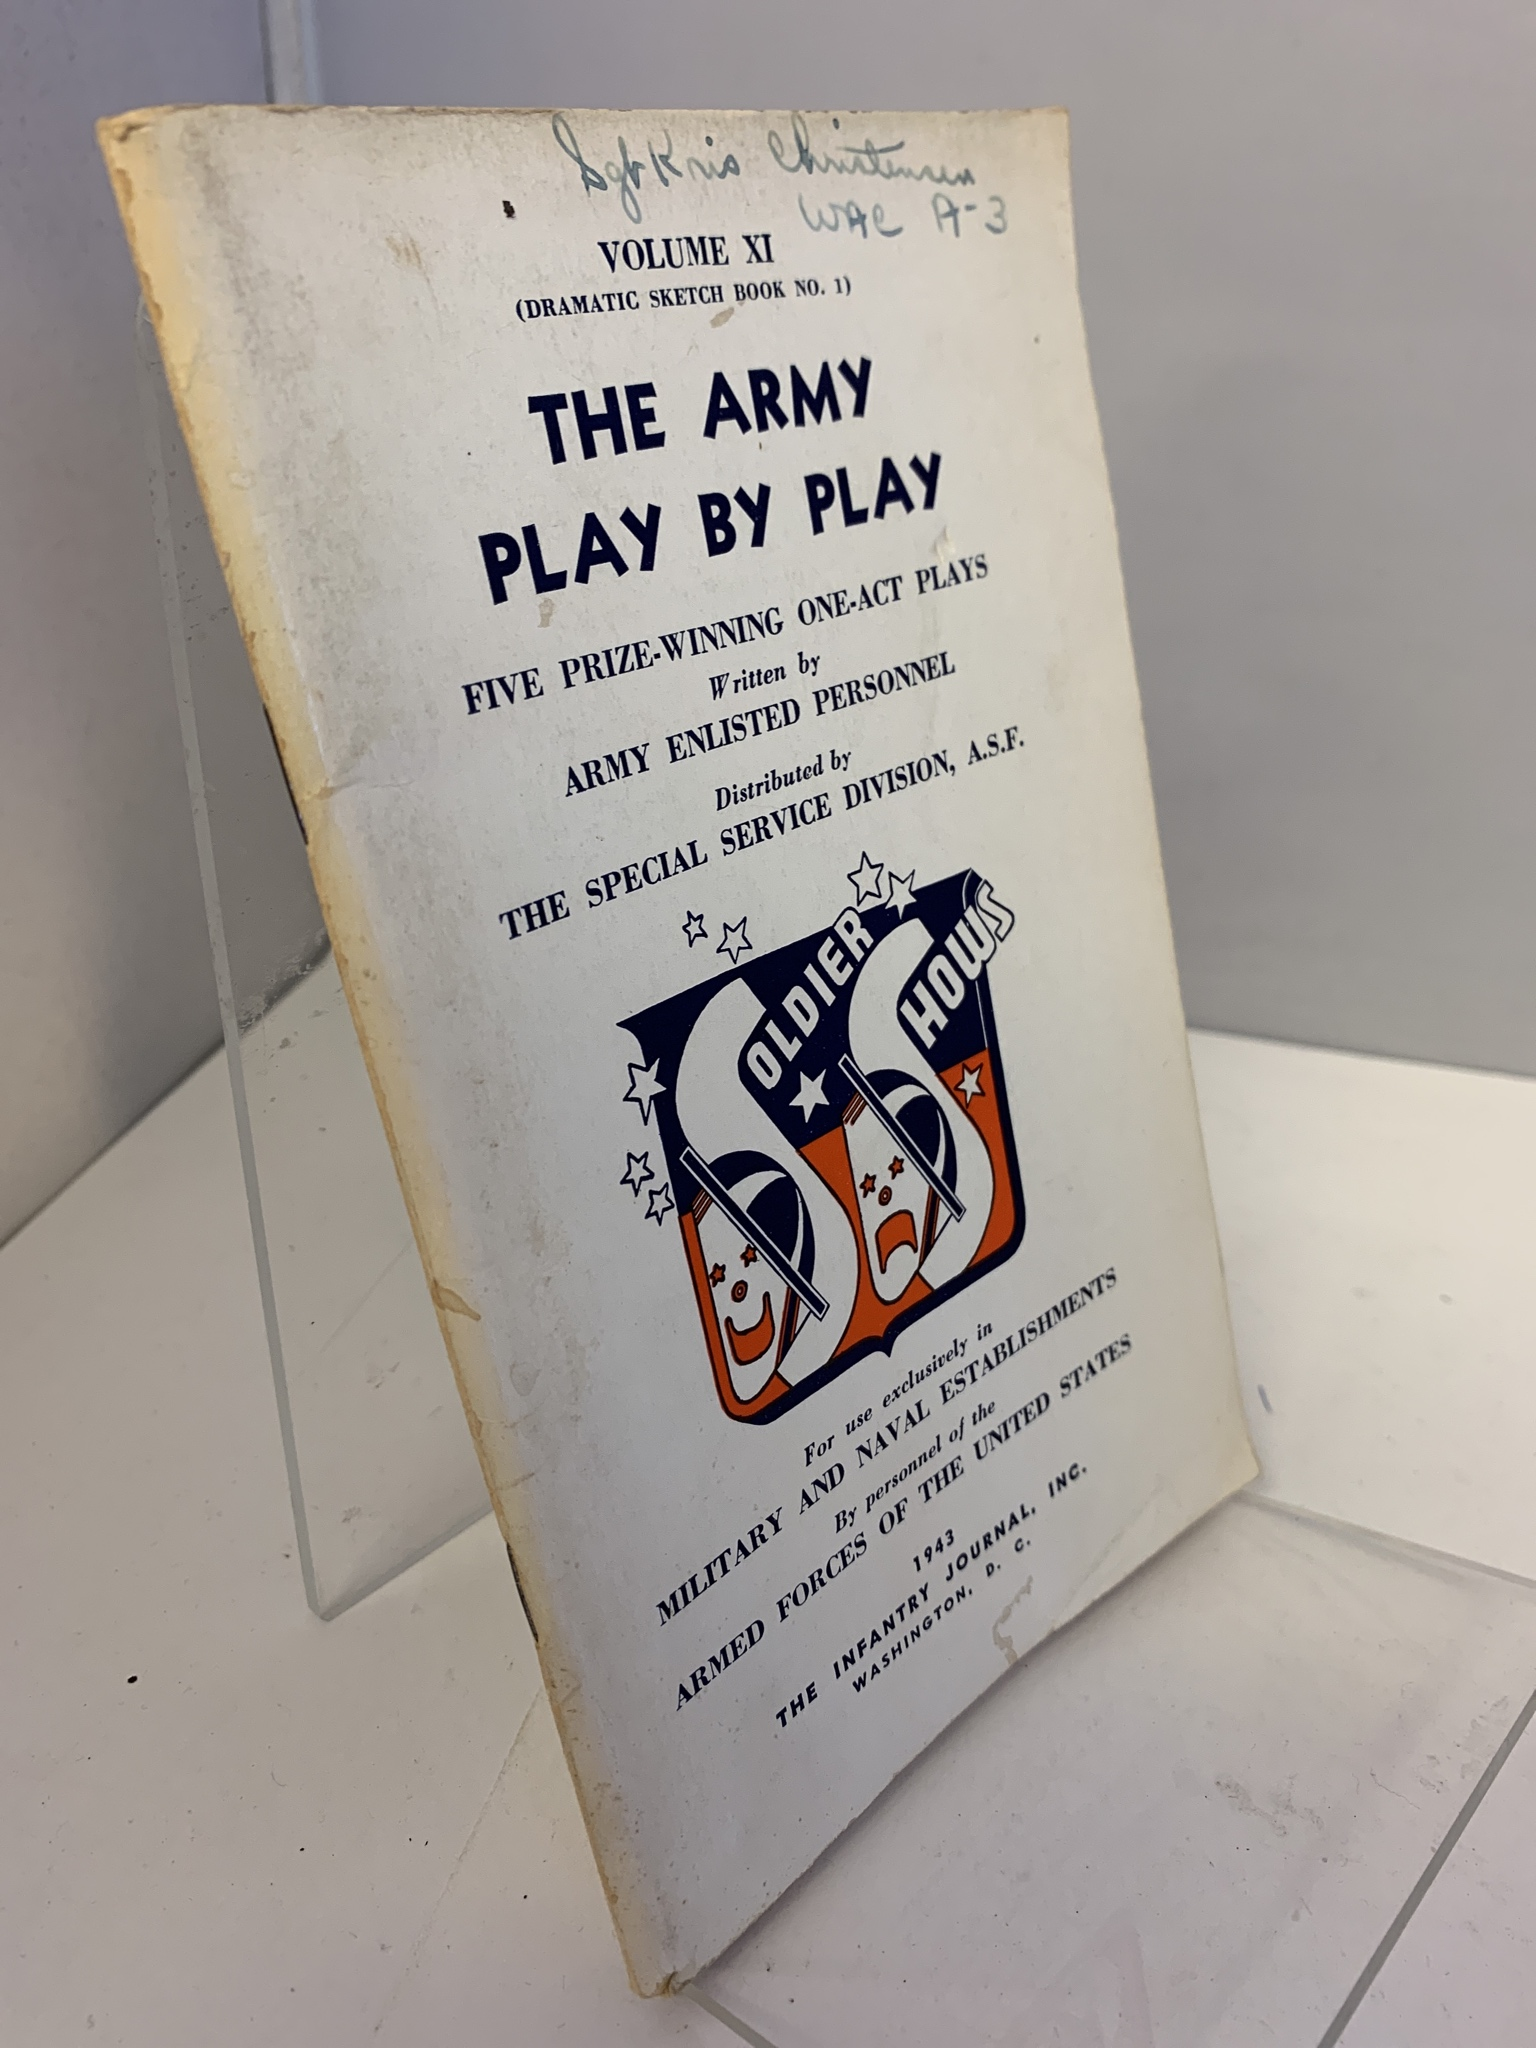 Image for THE ARMY PLAY BY PLAY, FIVE PRIZE-WINNING ONE-ACT PLAYS. VOLUME XI (DRAMATIC SKETCH BOOK NO.1) FOR USE EXCLUSIVELY IN MILITRAY AND NAVAL ESTABLISHMENTS BY PERSONNEL OF THE ARMED FORCES OF THE UNITED STATES